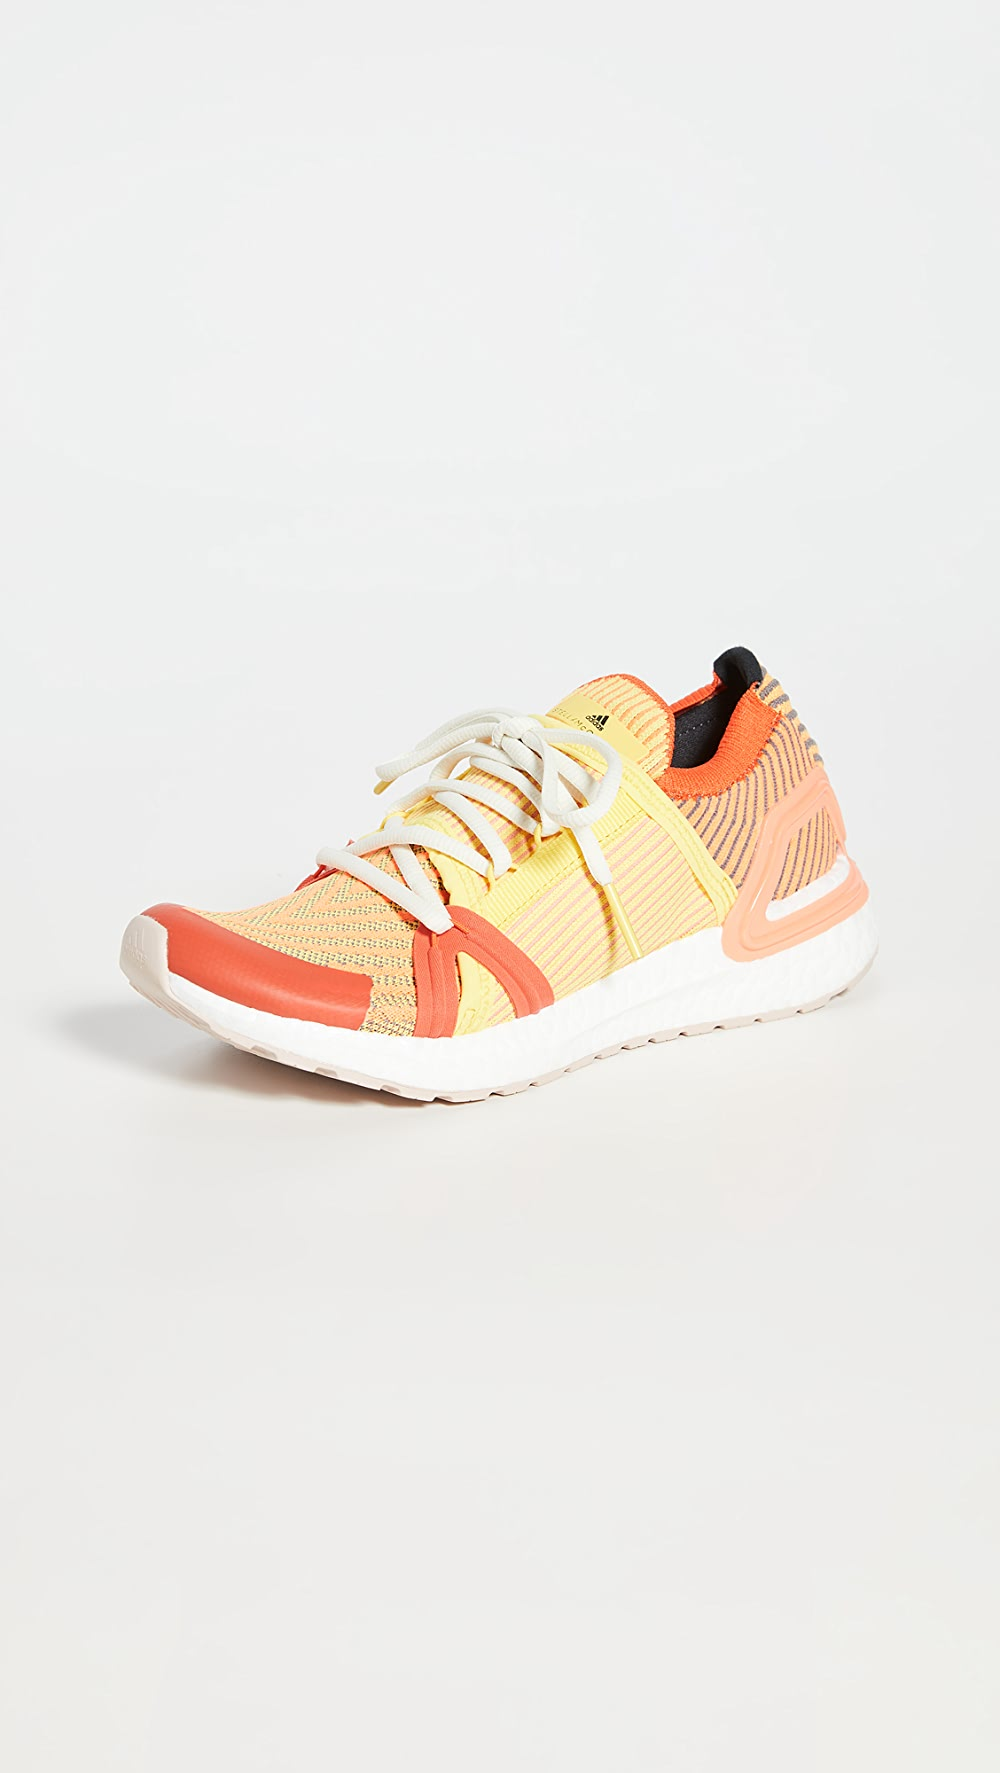 100% Quality Adidas By Stella Mccartney - Ultraboost 20 S. Sneakers Excellent Quality